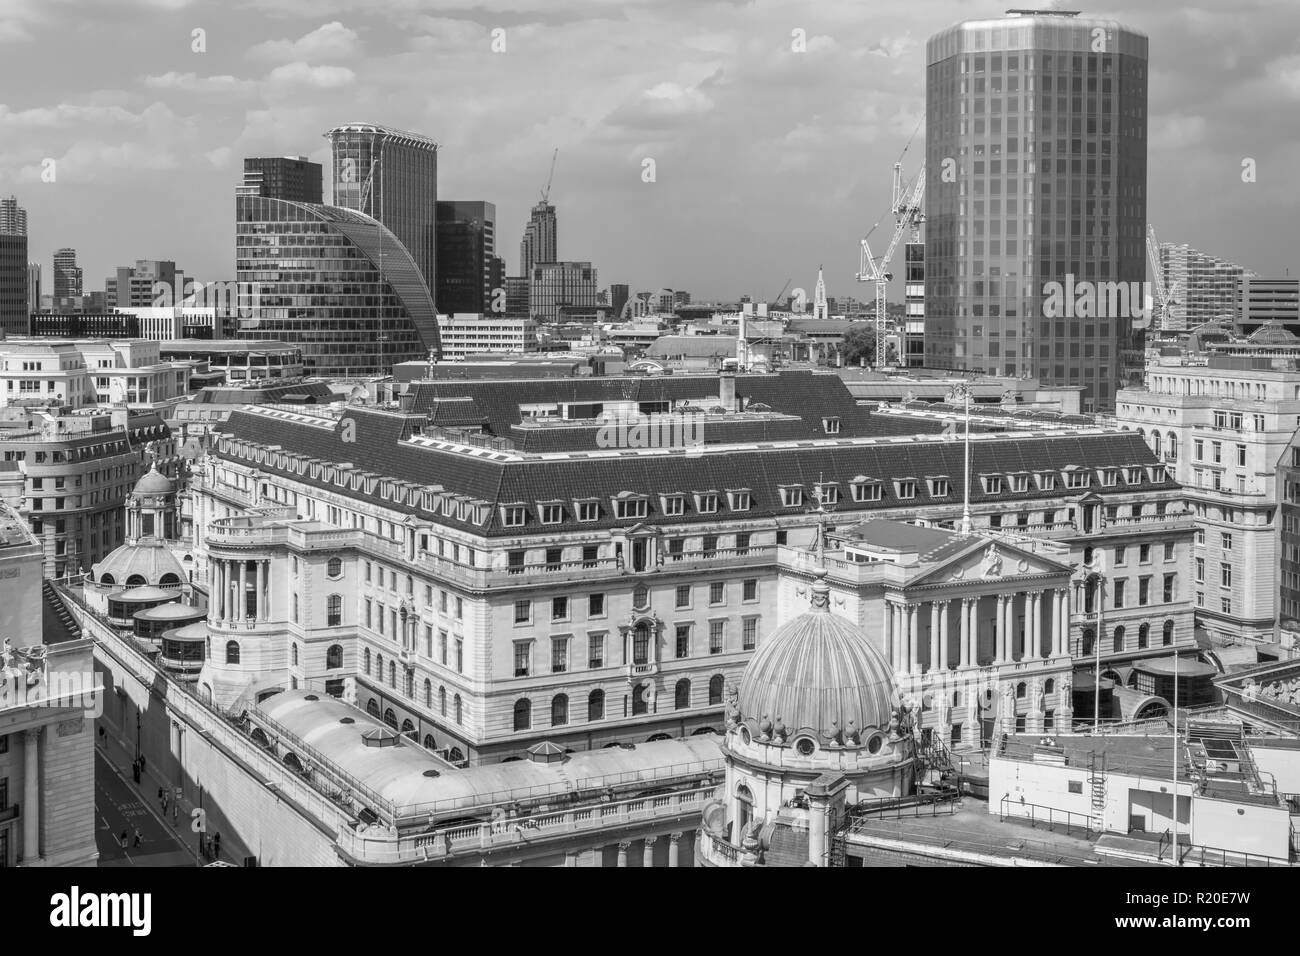 Rooftop skyline view of the Bank of England, Threadneedle Street, City of London, EC2 with Angel Court and Moor House behind - Stock Image